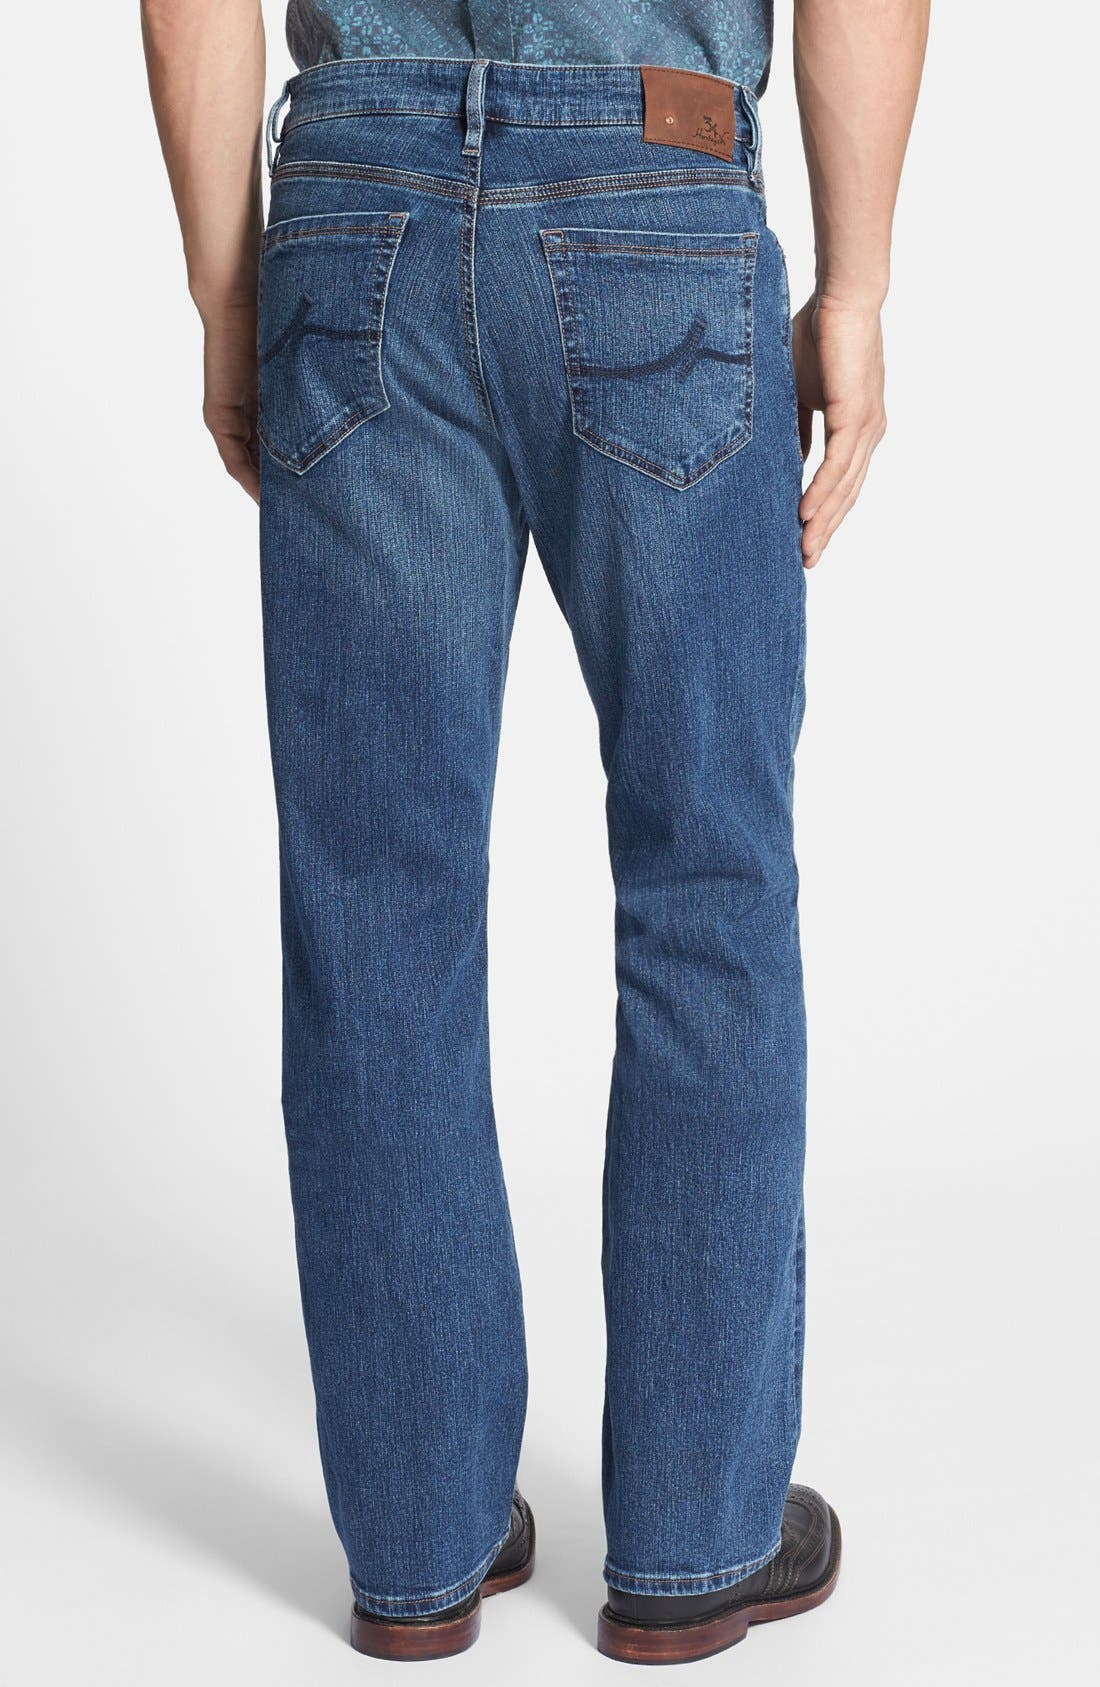 Charisma Classic Relaxed Fit Jeans,                             Alternate thumbnail 3, color,                             Mid Comfort